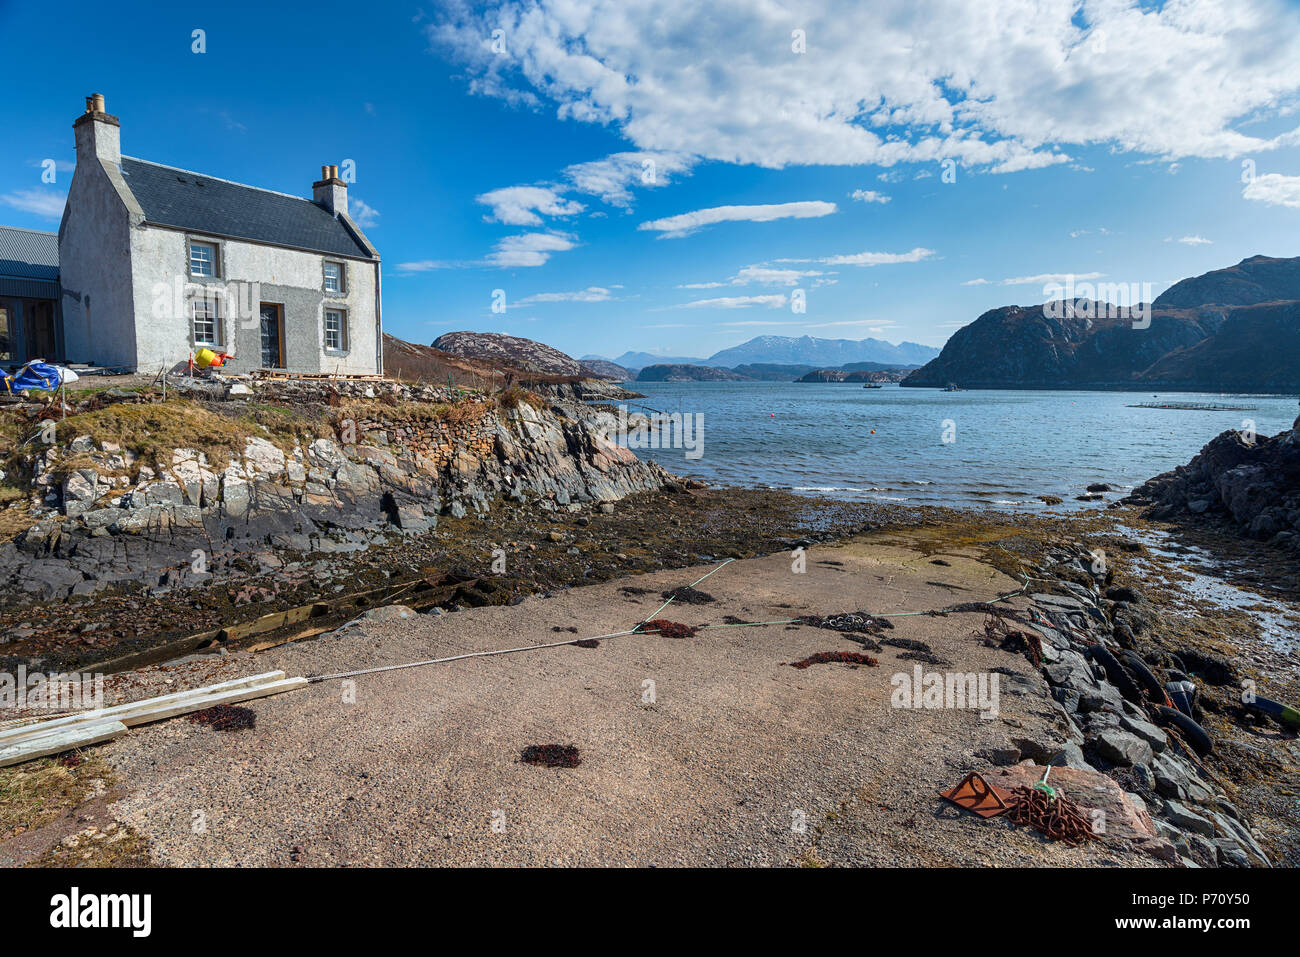 The remote hamlet of Fanagmore on the shores of Loch Laxford in Sutherland in the Scottish Highlands in far northwestern Scotland. Stock Photo